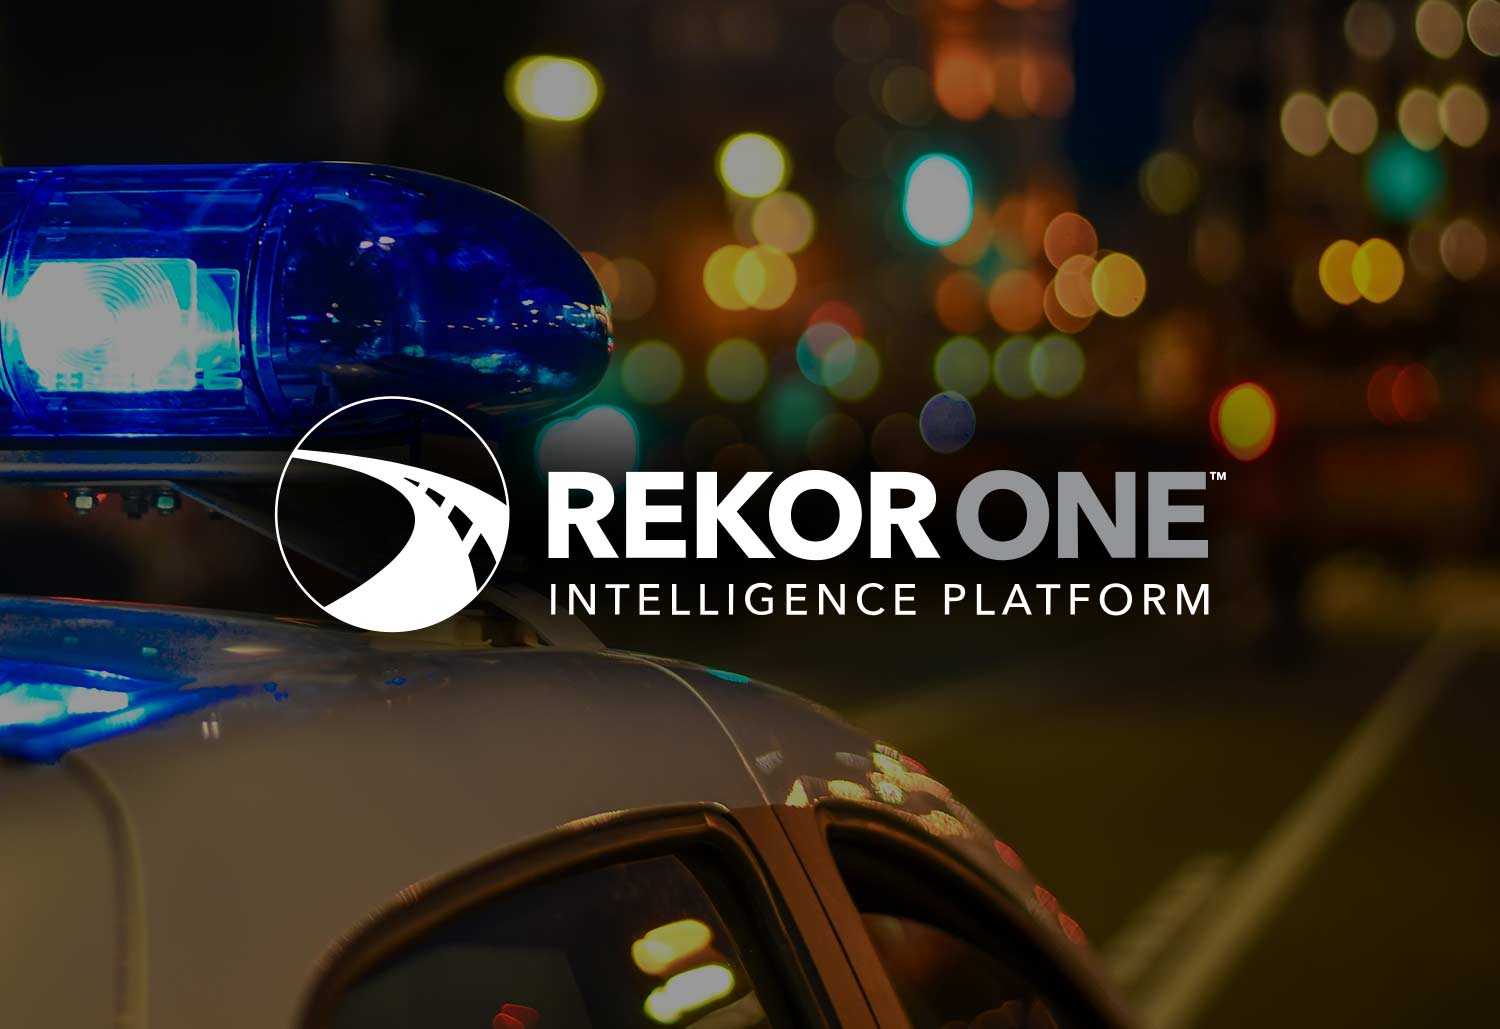 Three Municipalities to Deploy Rekor One™ to Support Public Safety Missions